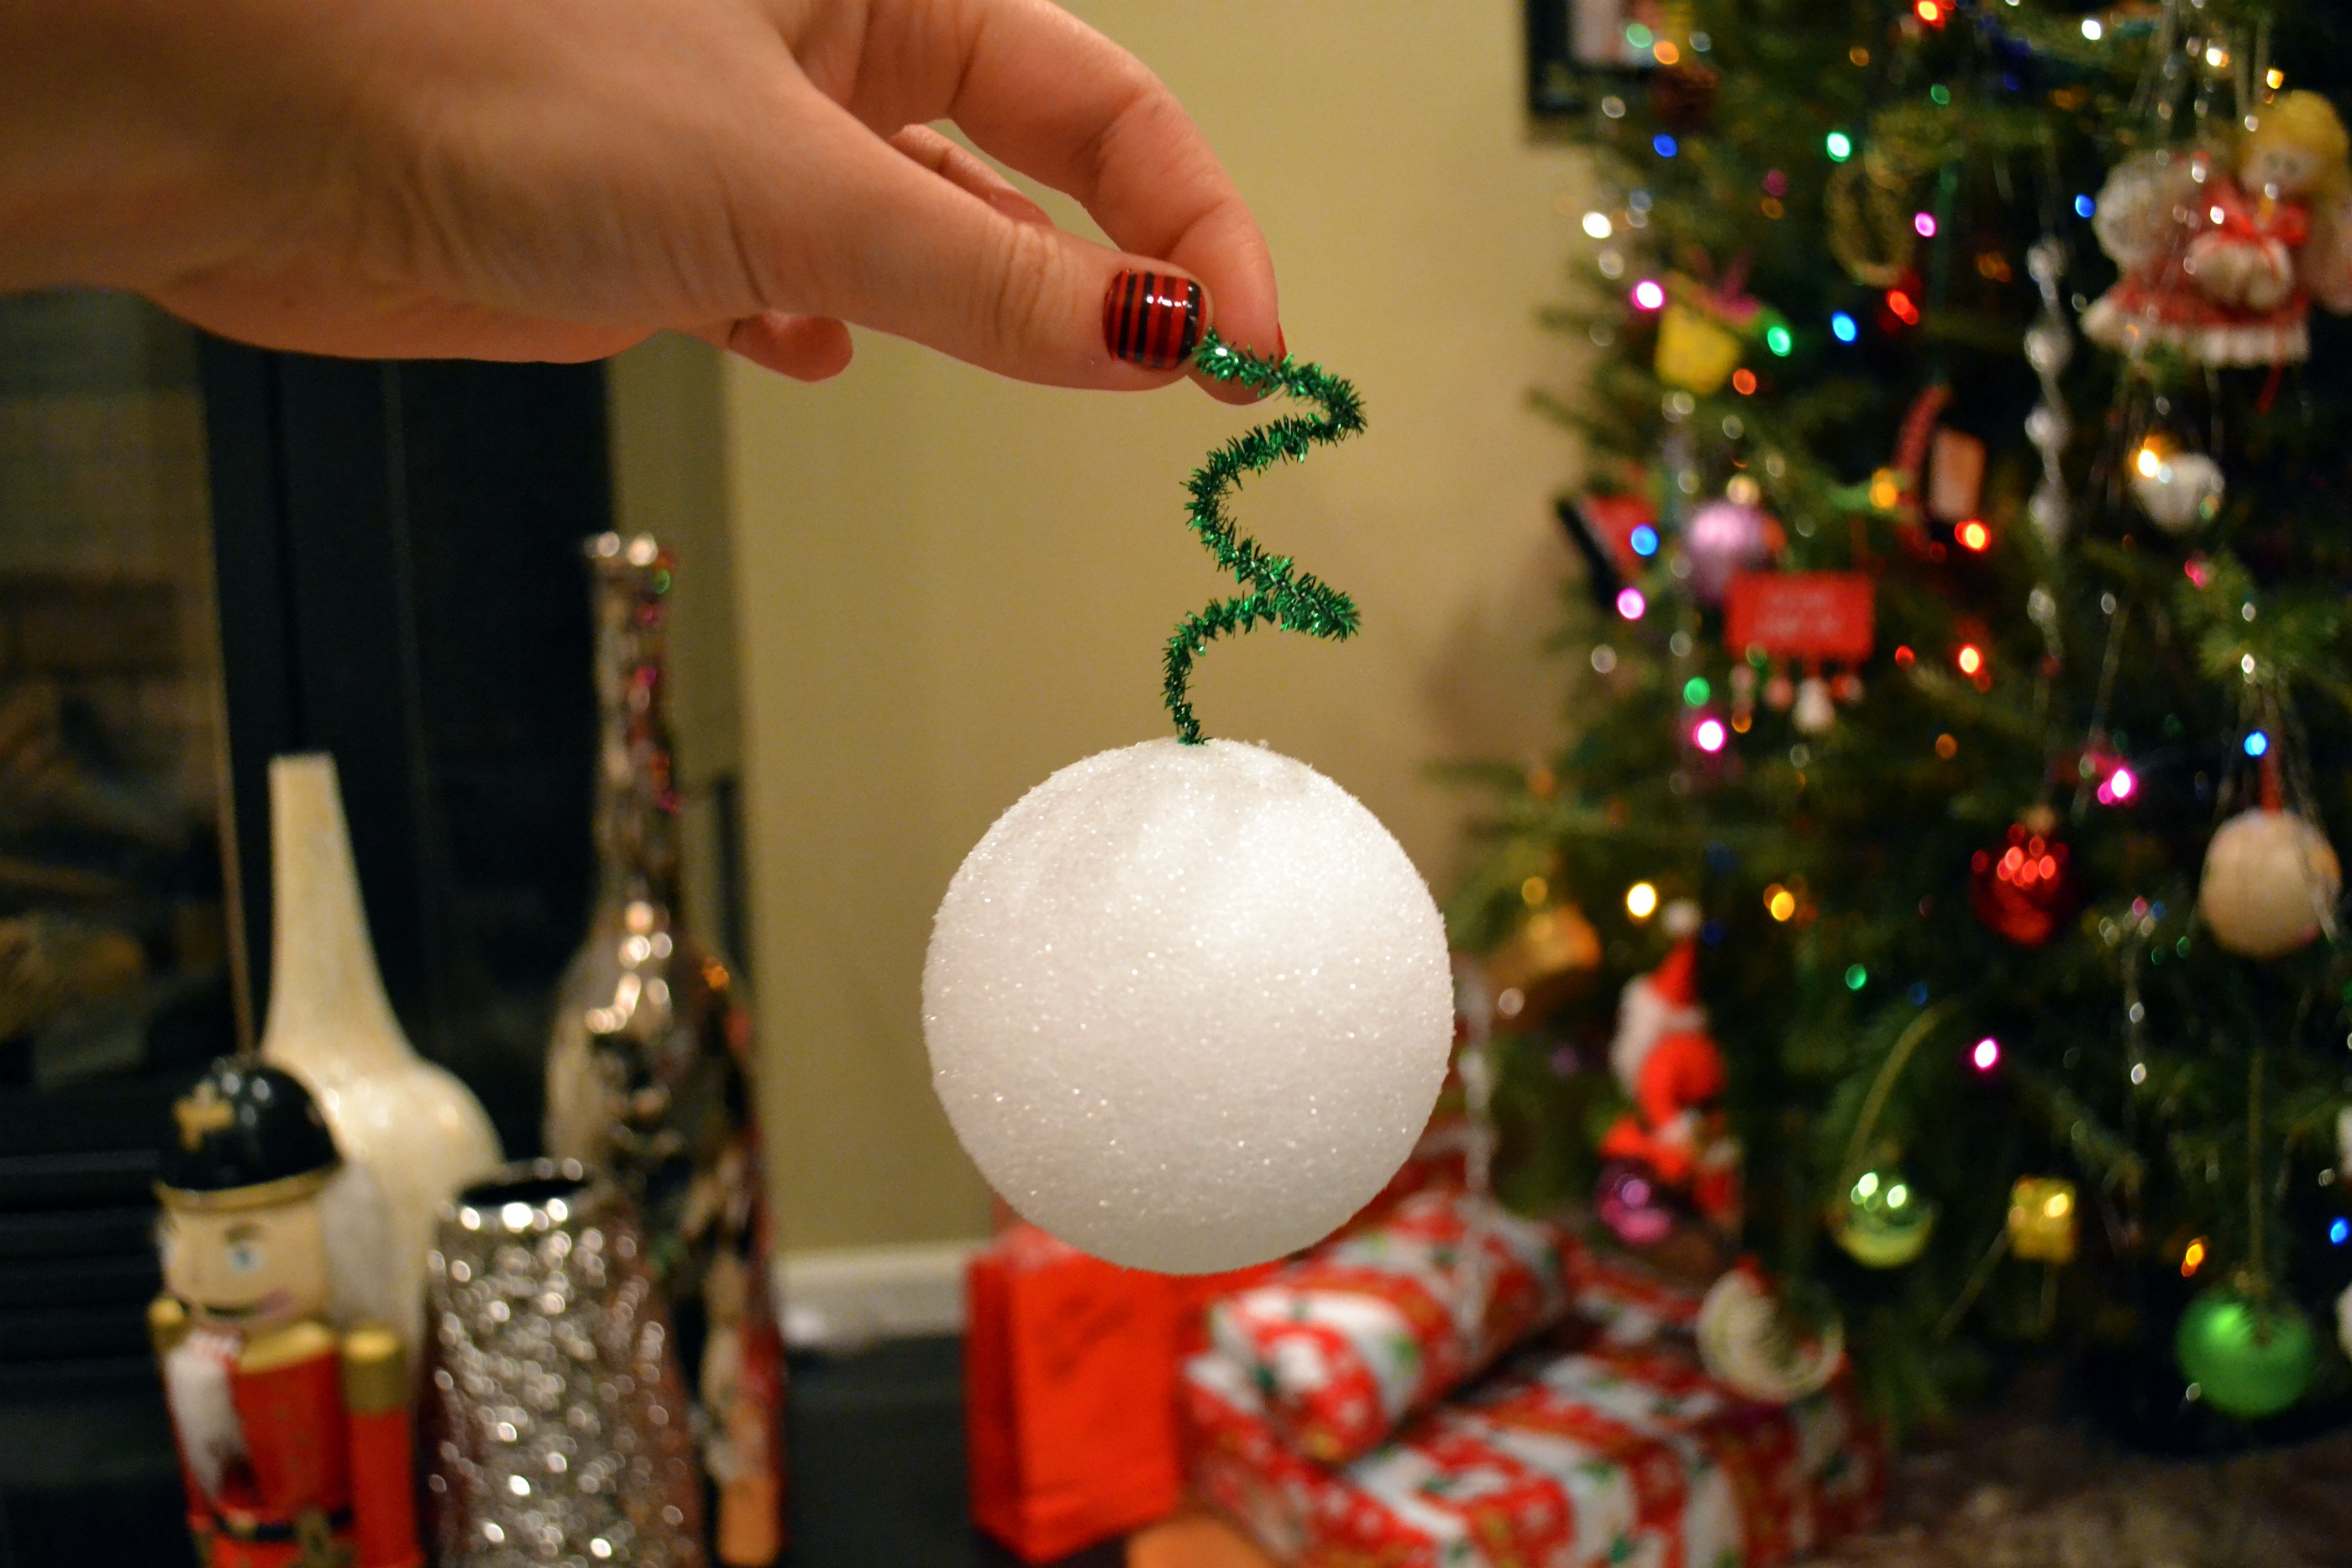 Press curly-Q into styrofoam ball, above. Cuuuute.